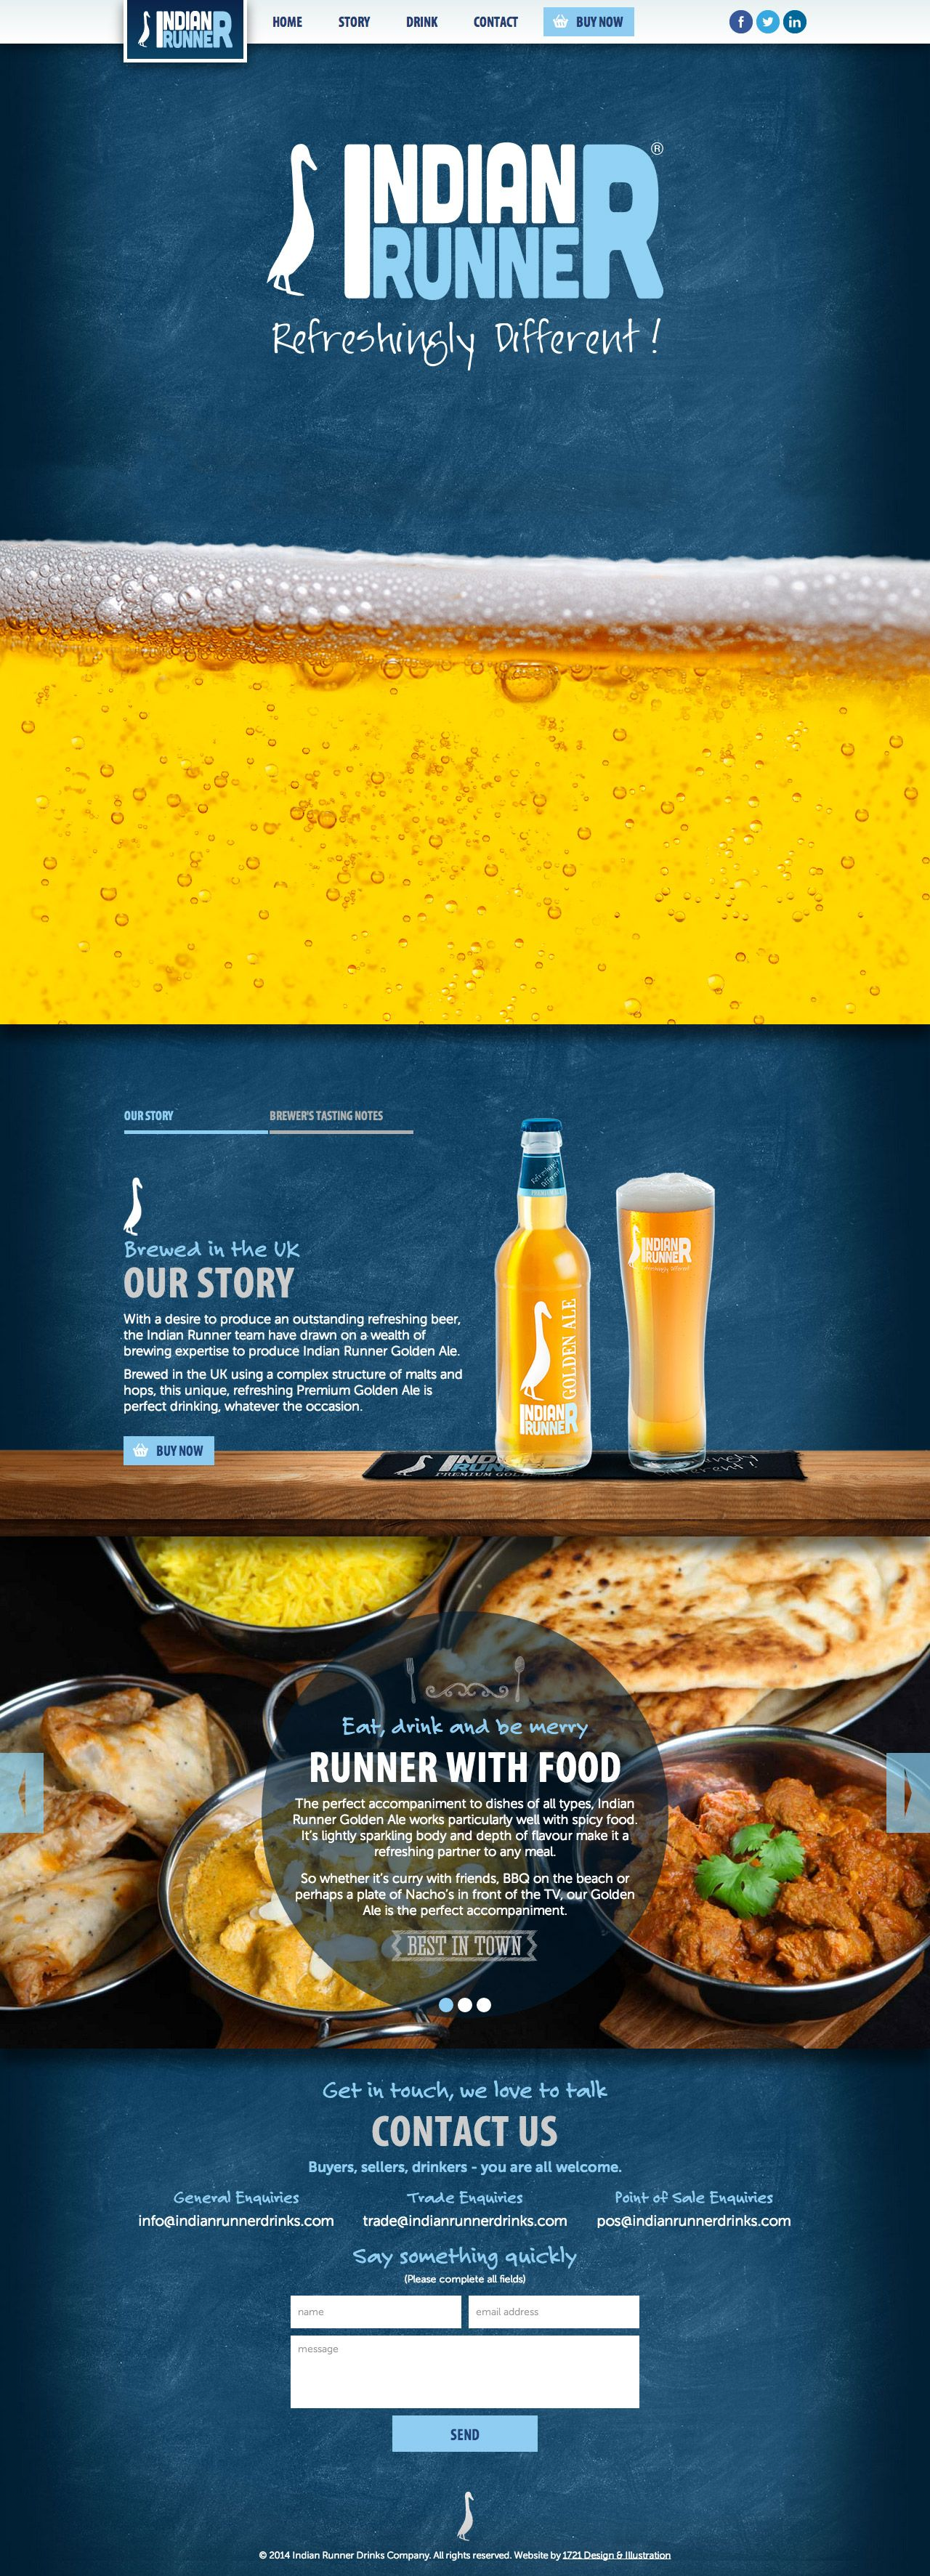 One pager for 'Indian Runner' Golden Ale featuring a blue chalkboard textured background that works well against the color of the product ie. beer:)